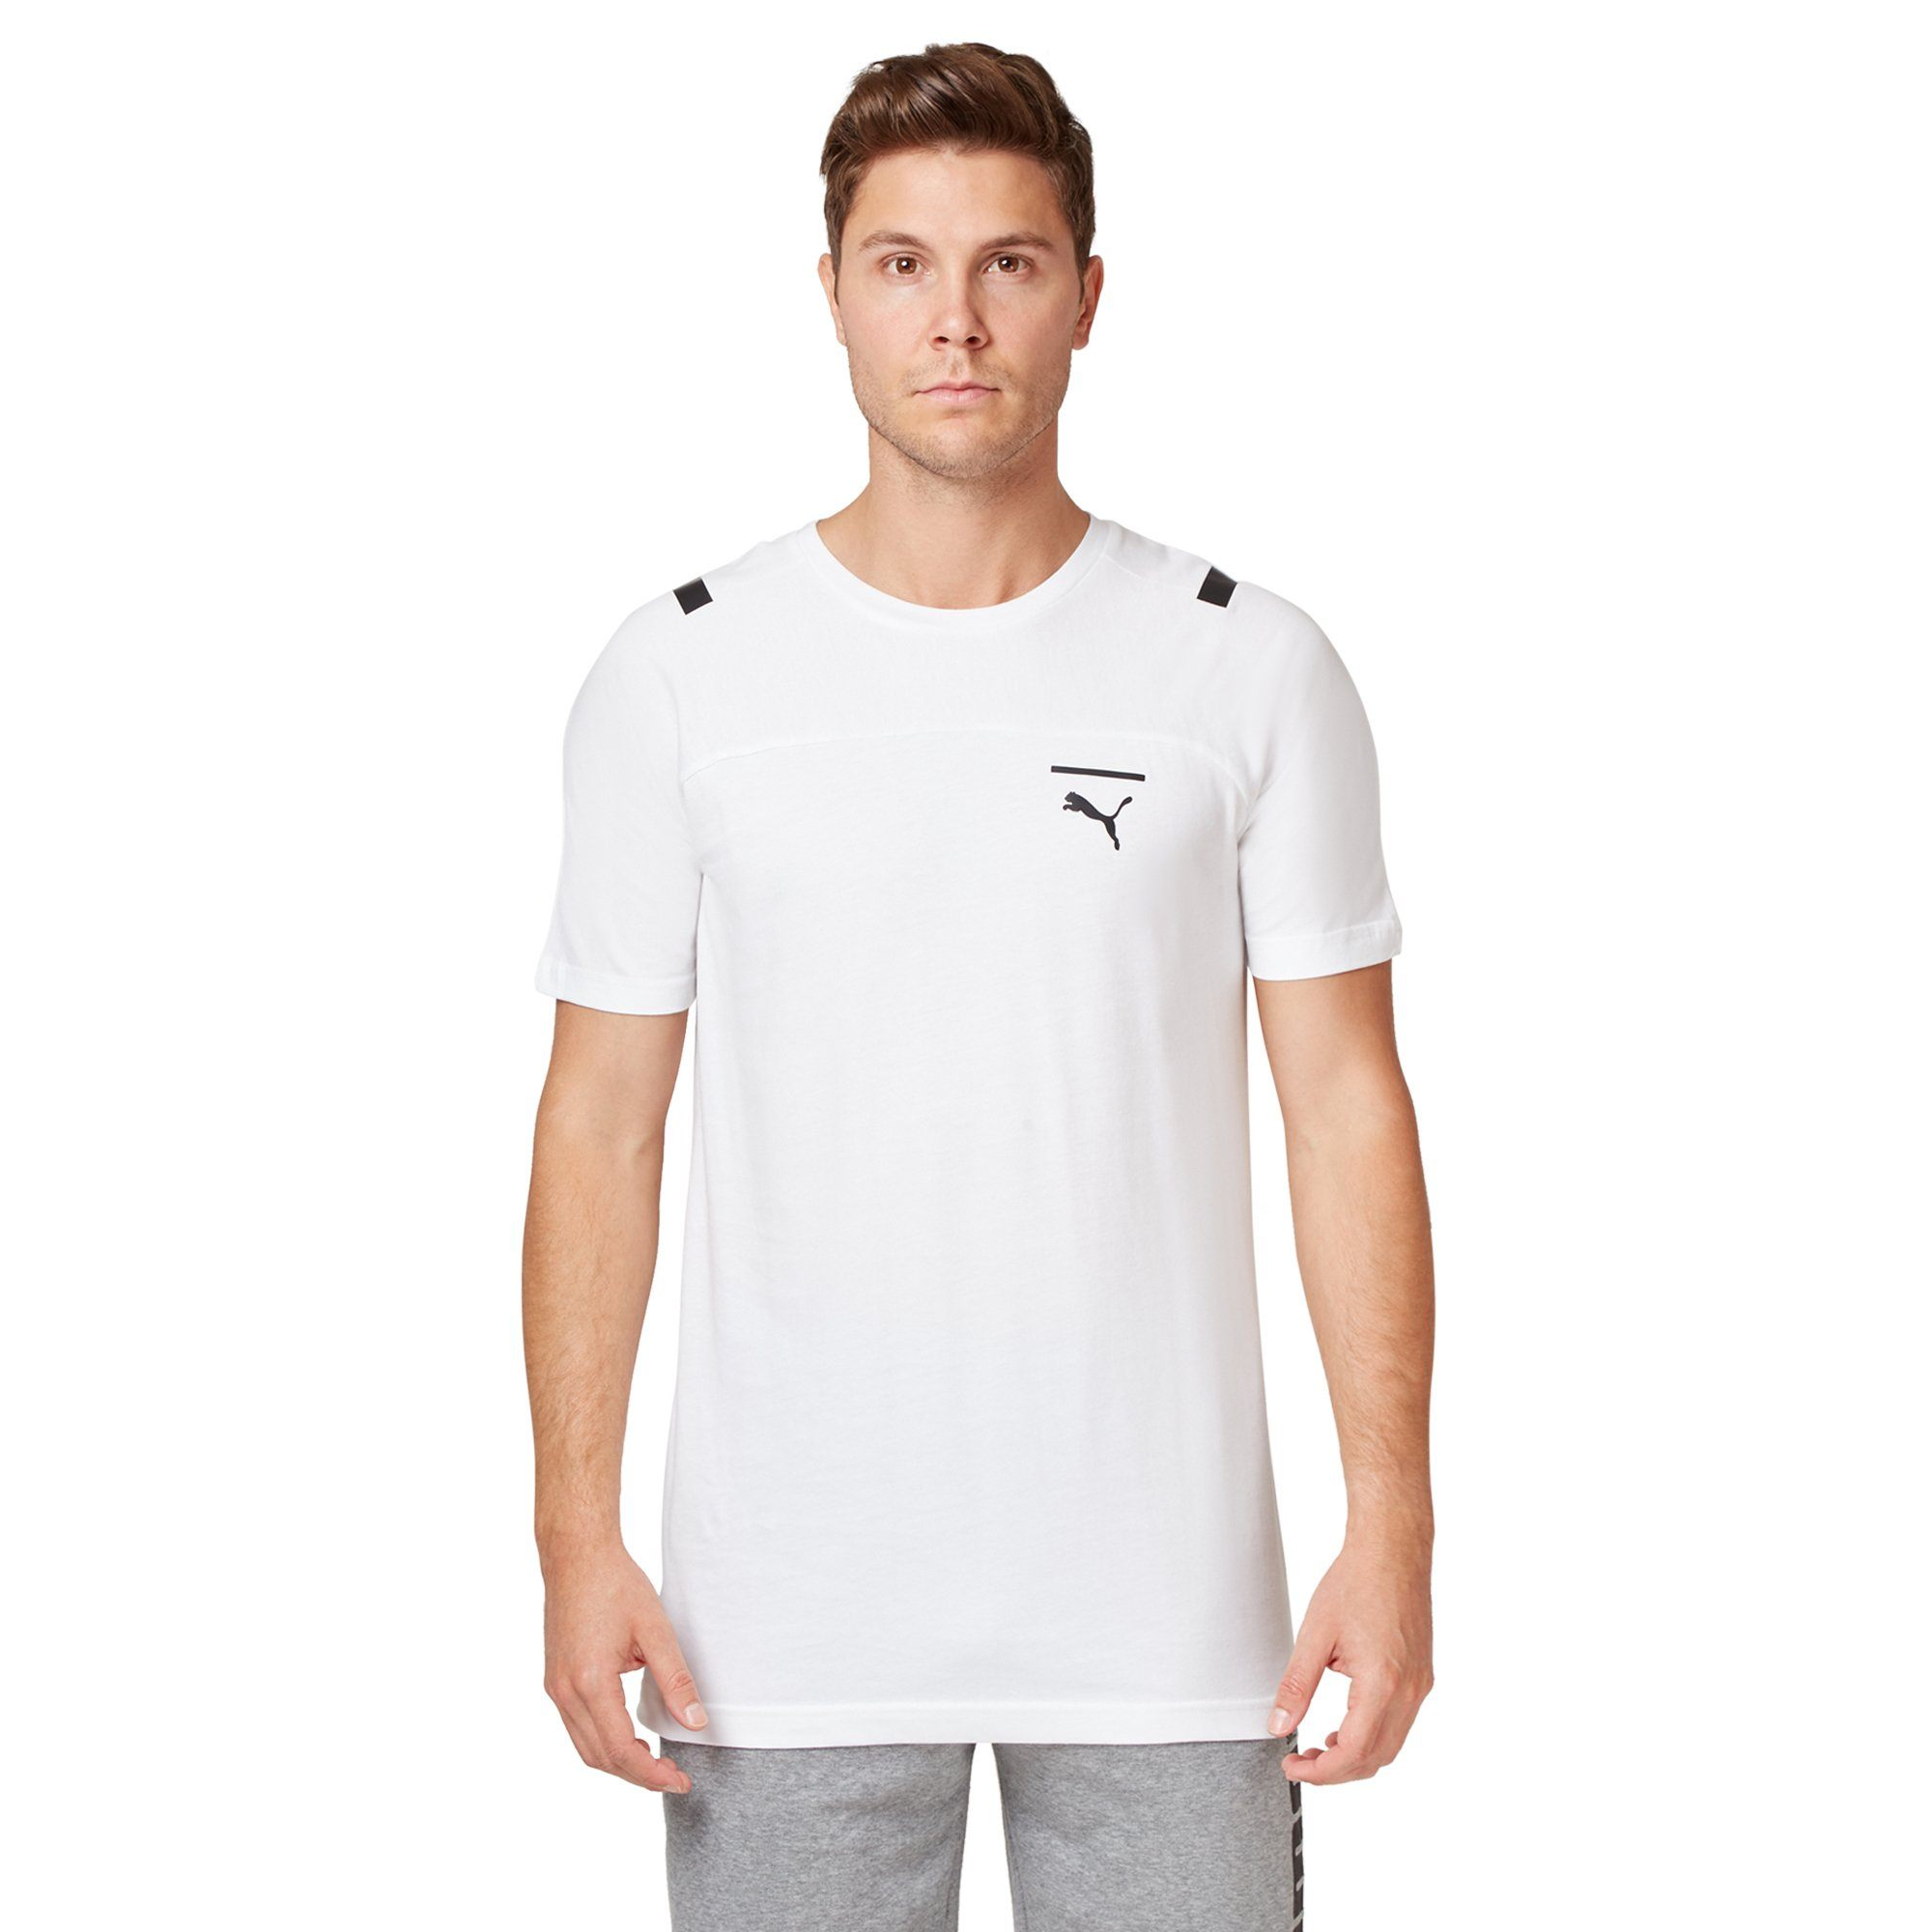 Puma Men's Pace Tee - White Apparel Puma  (2122606084155)